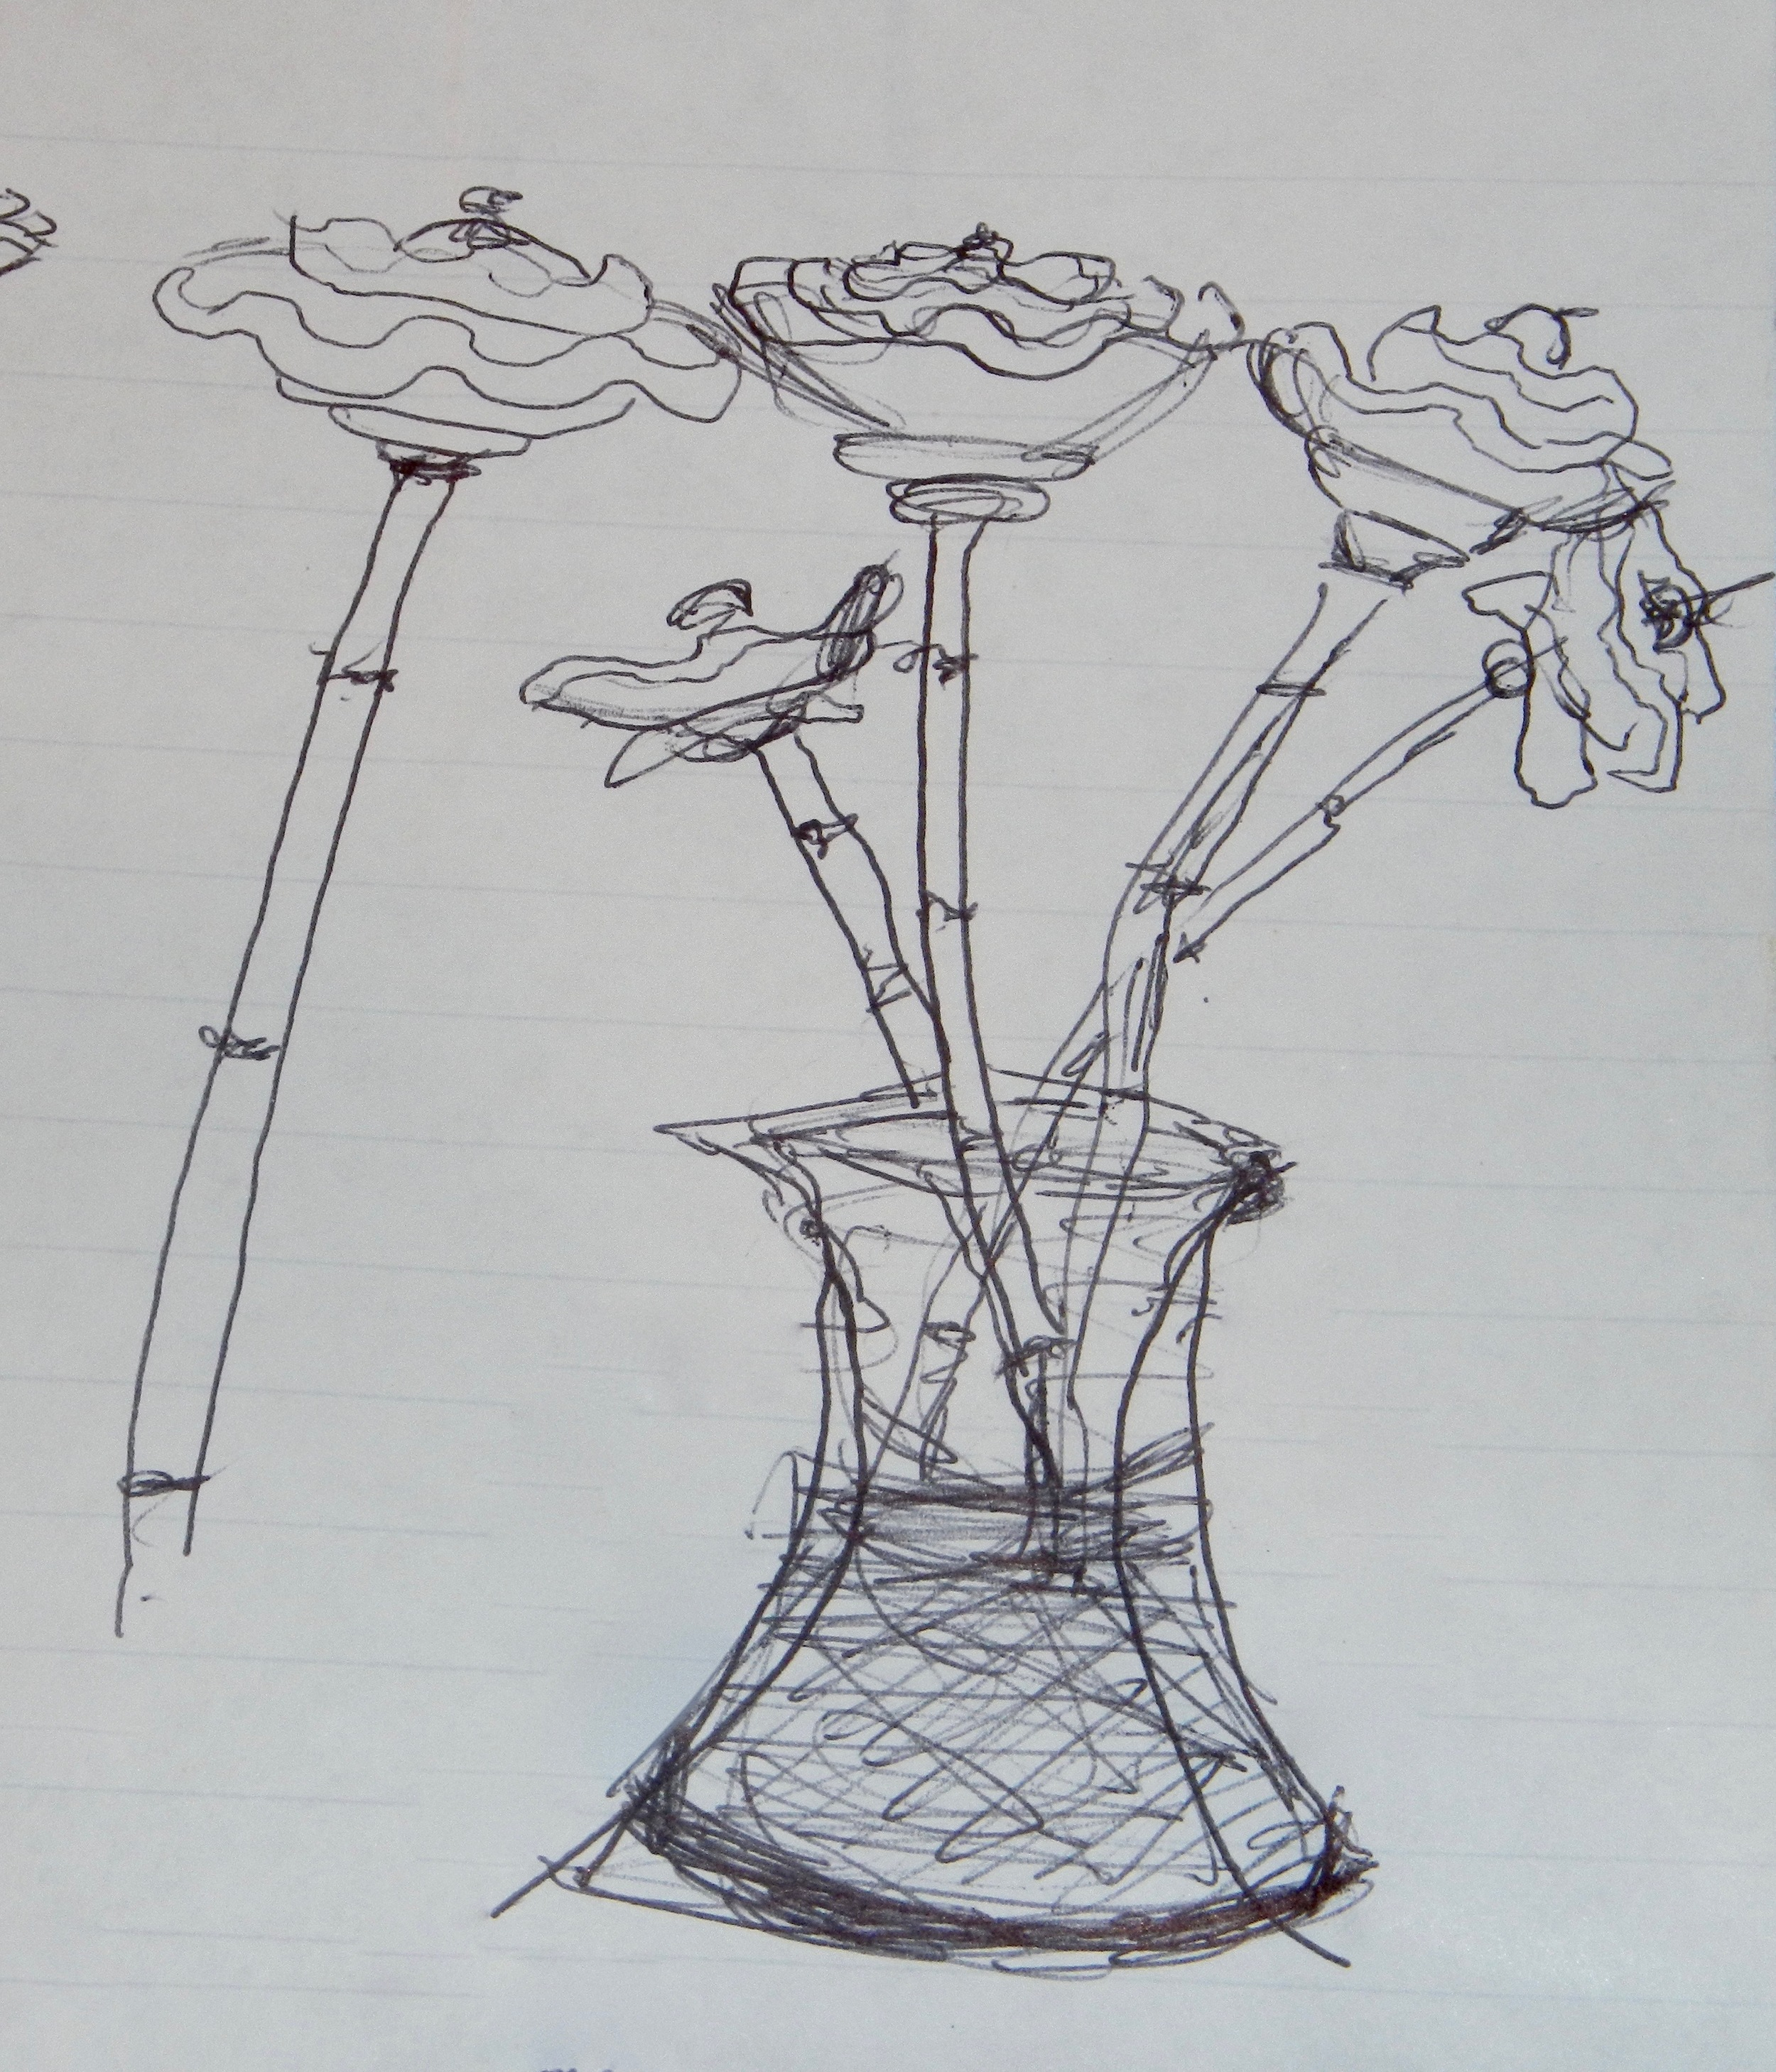 (Sketching a stoneware & bamboo flower idea. Mimi Stadler 2016)